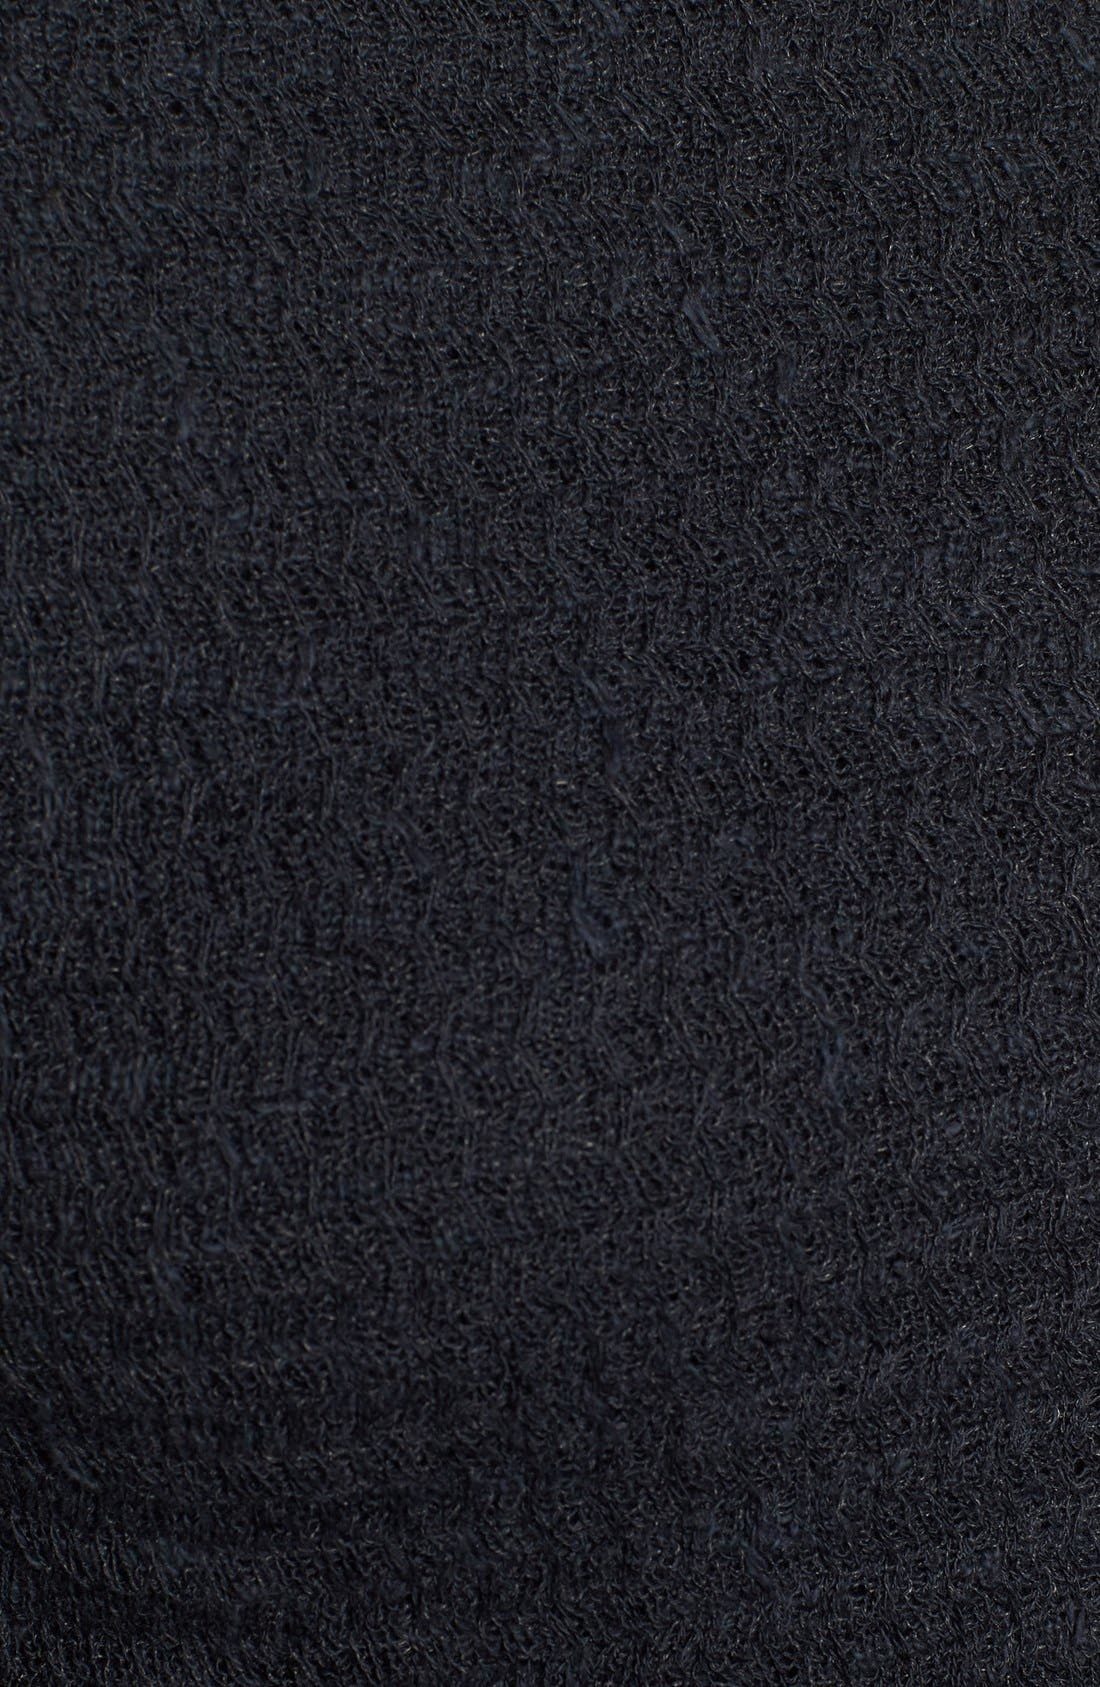 Crossover Sweater,                             Alternate thumbnail 3, color,                             001